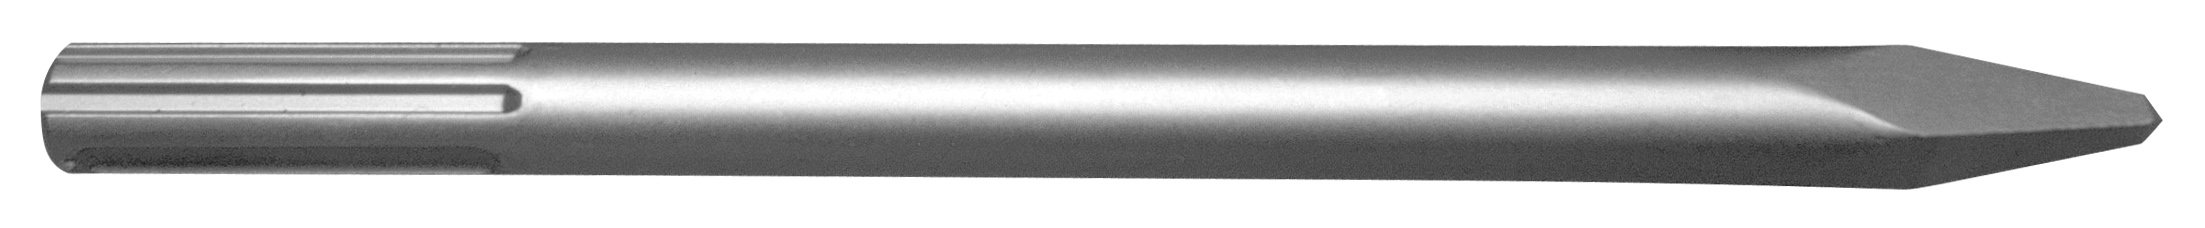 Champion Chisel, 24-Inch Long SDS-MAX Moil Point - Bull Point by Champion Chisel Works